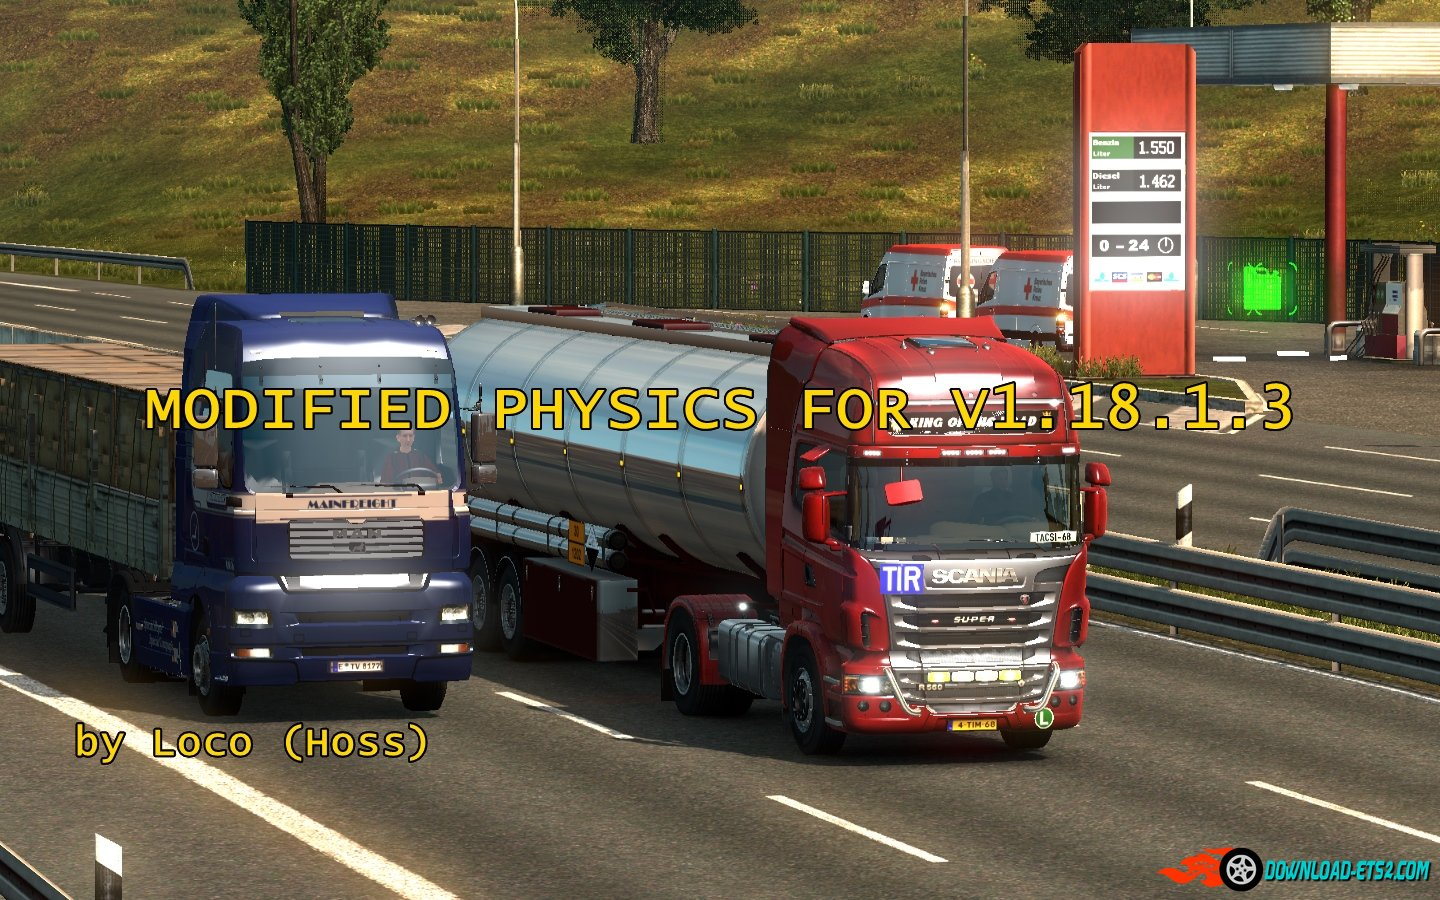 MODIFIED PHYSICS FOR V1.18.1.3 by Loco